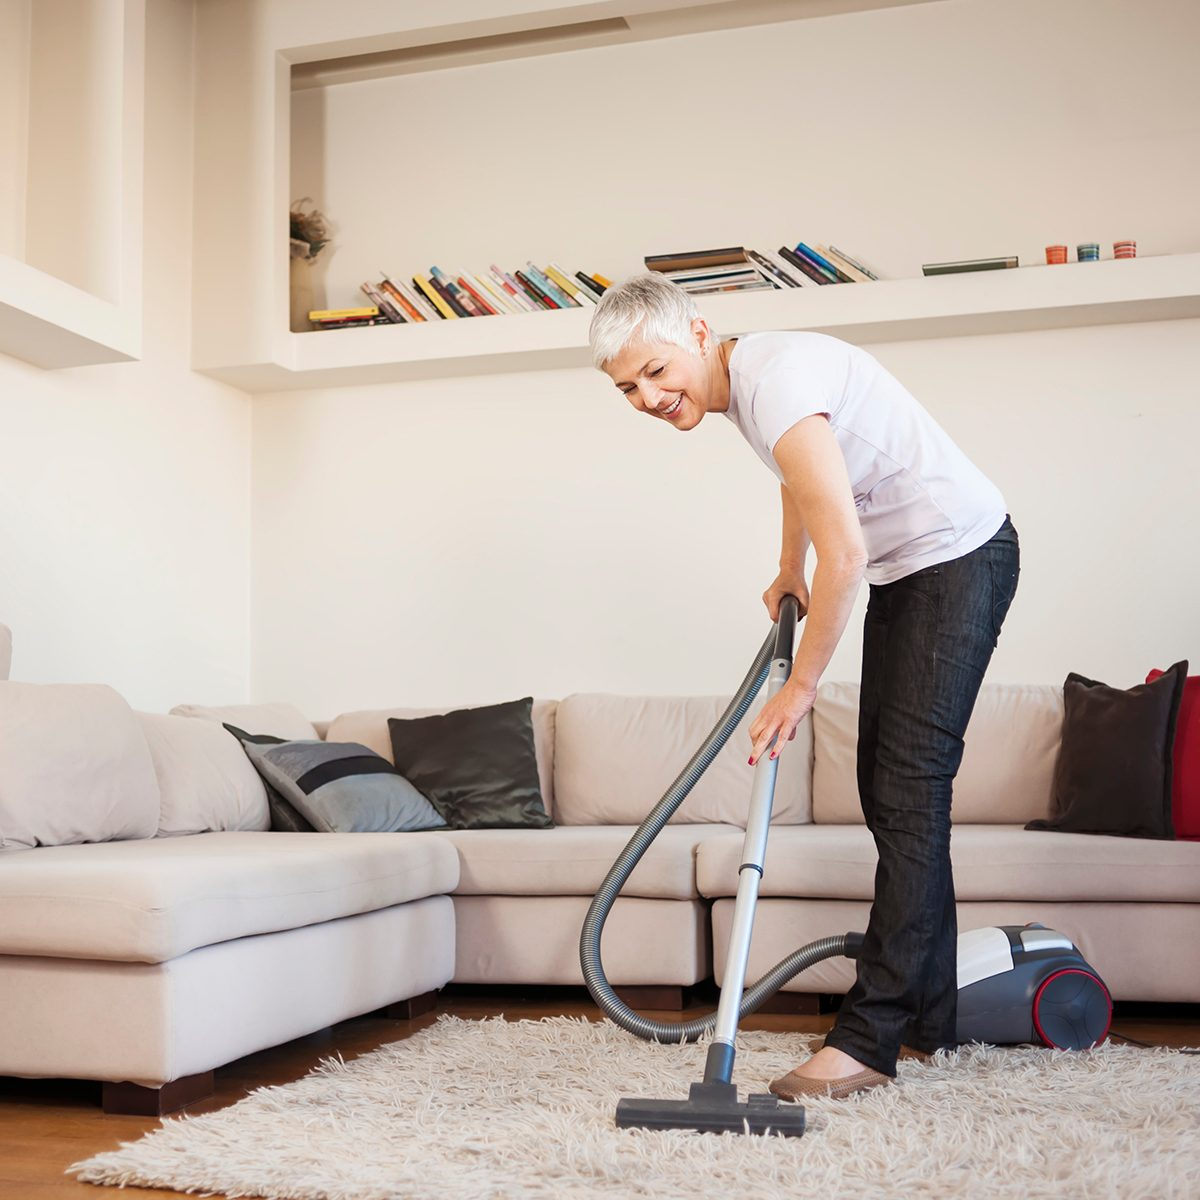 Woman cleaning carpet with a vacuum cleaner in room